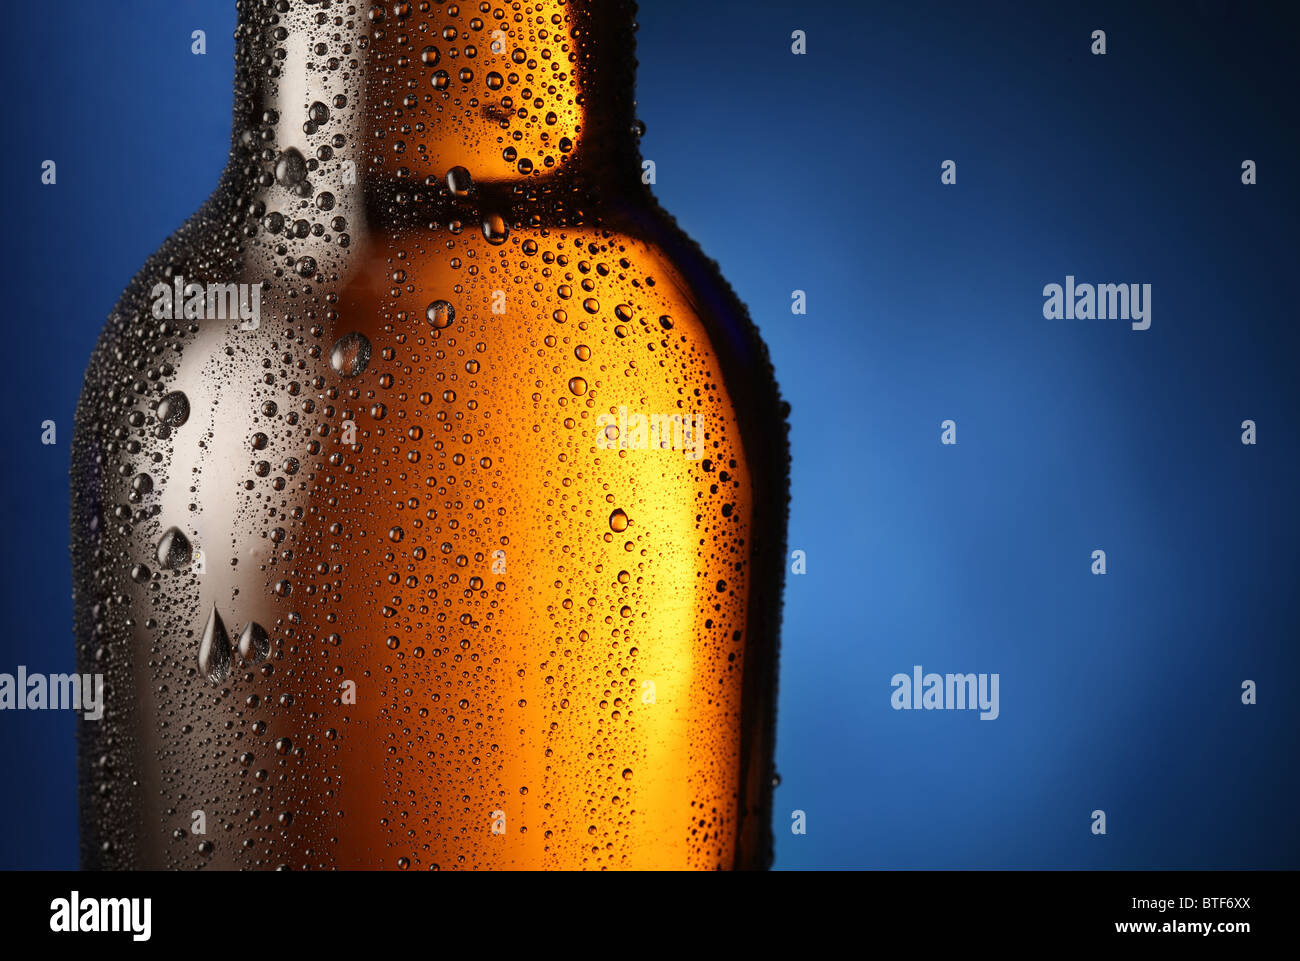 Bottle of beer with drops on a blue background. Close up part of the bottle. - Stock Image